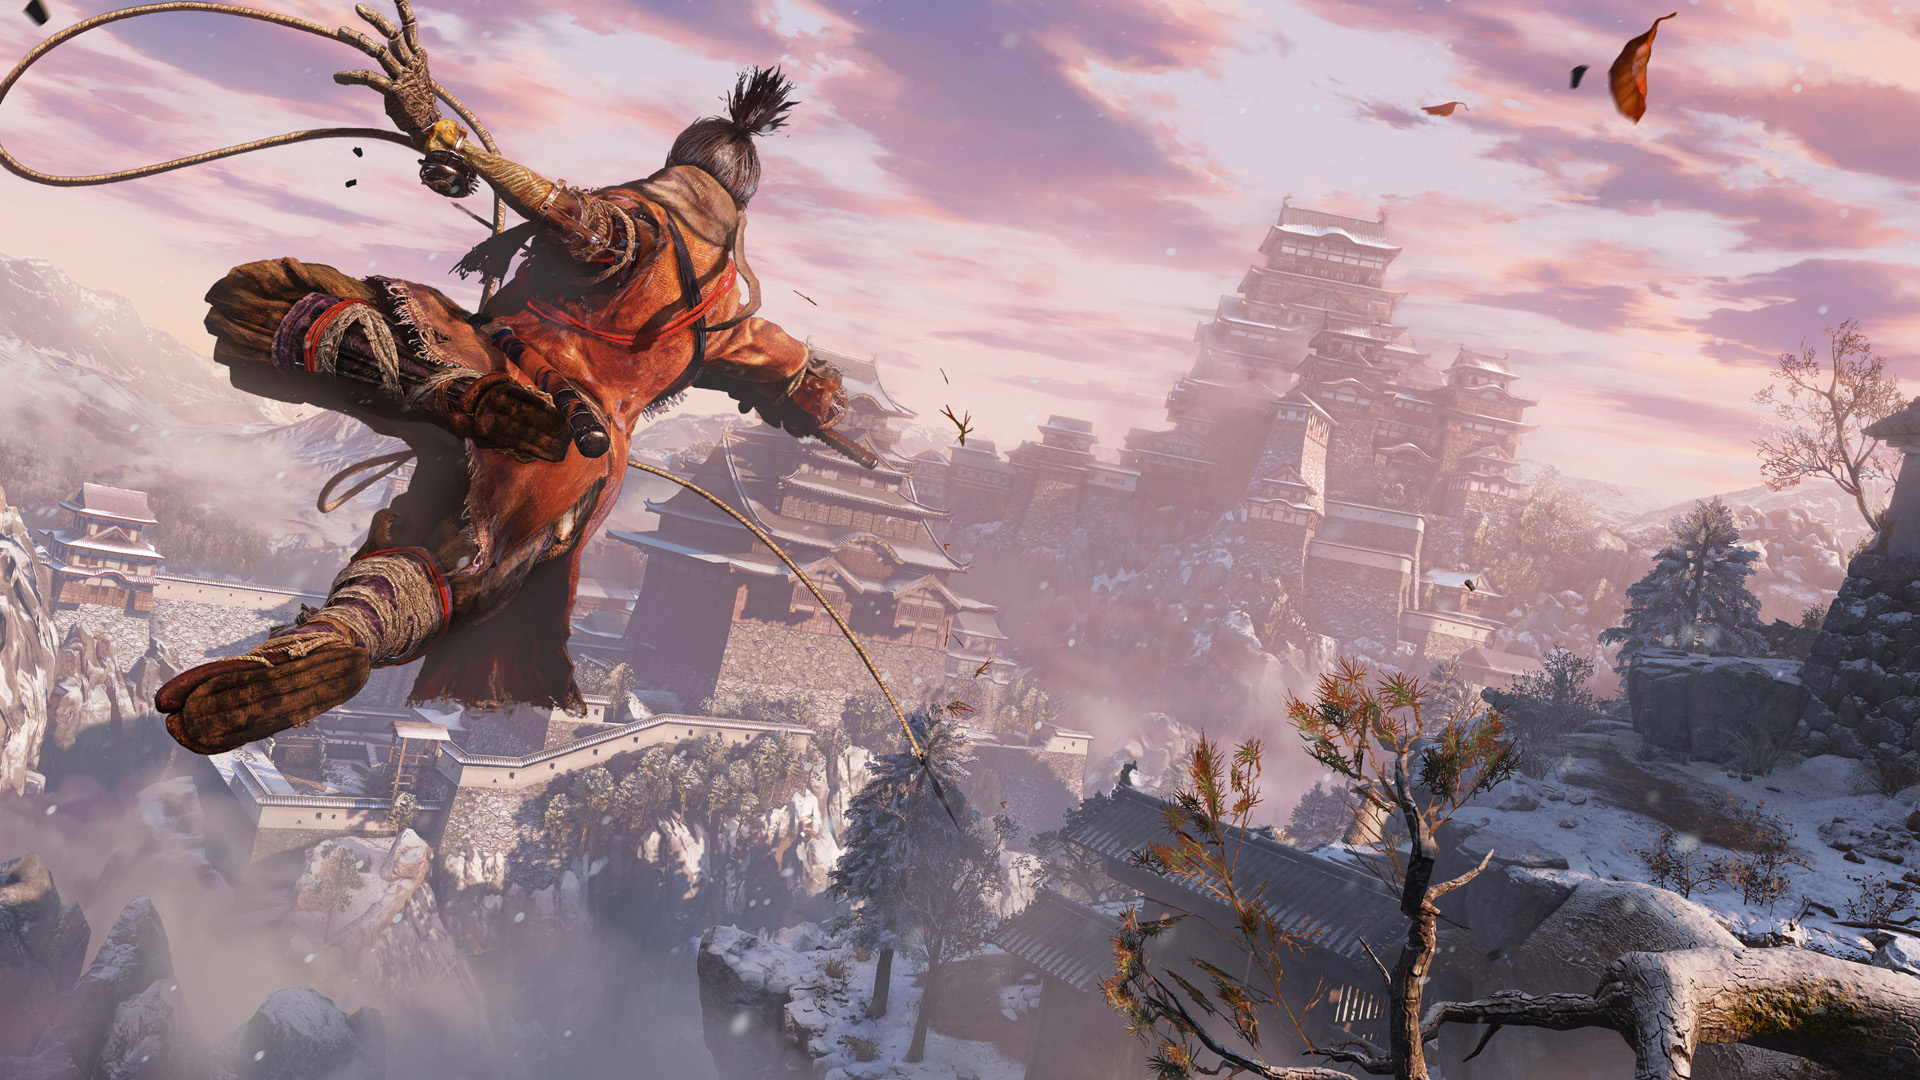 Sekiro Shadows Die Twice: How to Defeat All Bosses